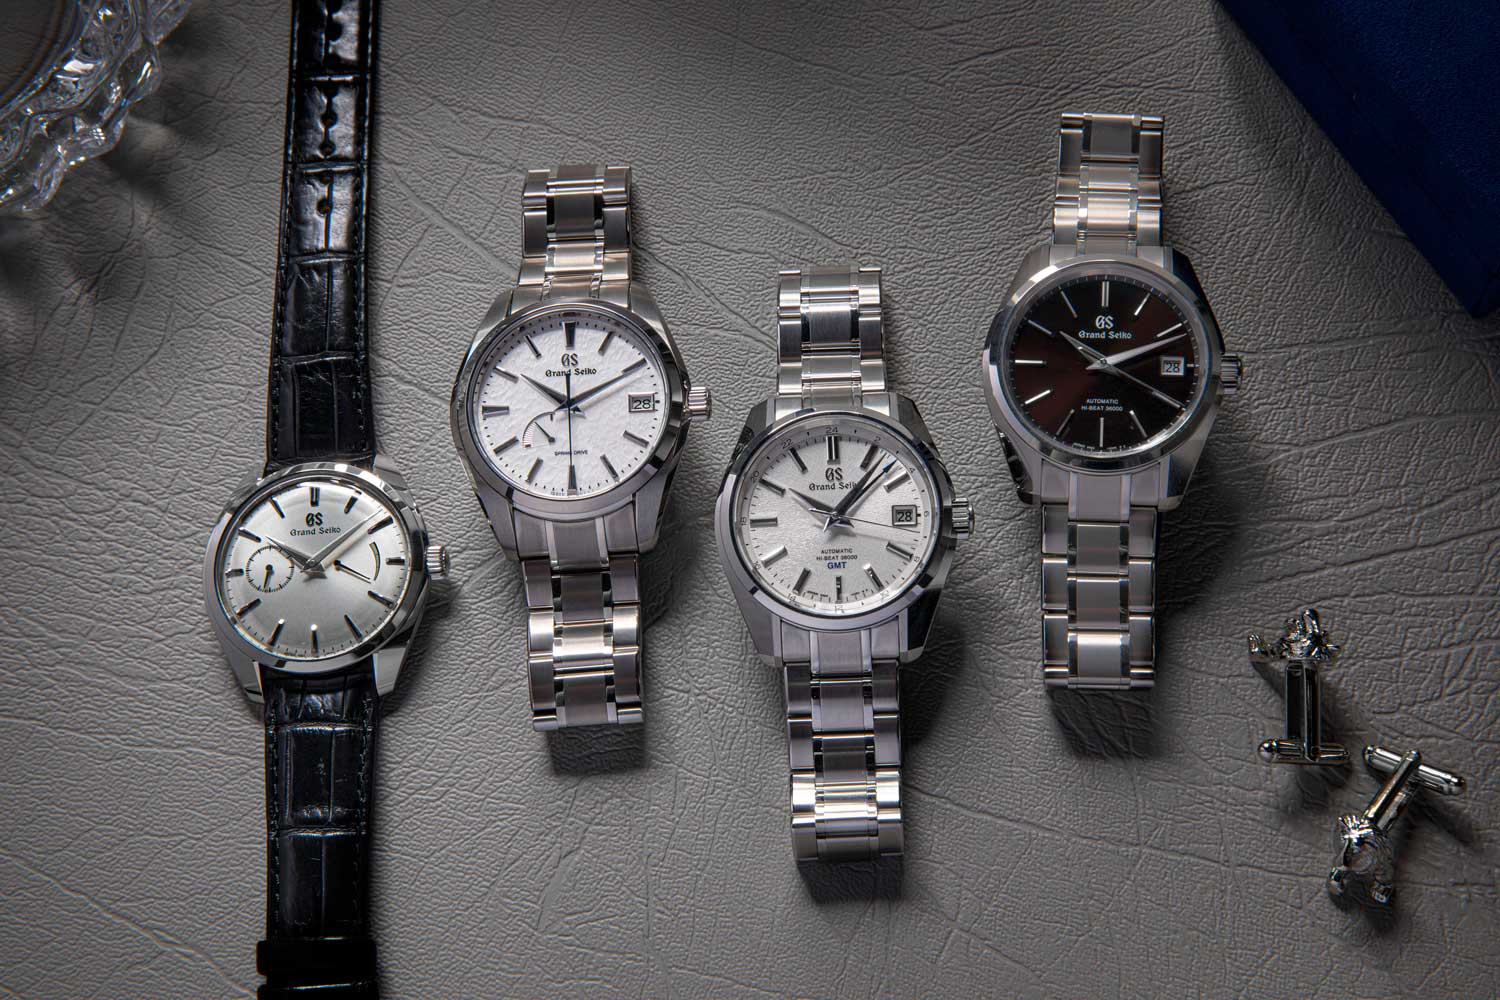 Revolution is proud to offer four of our favorite Grand Seiko models each expressing the best of the brand's tradition in design, finishing and technical innovation (©Revolution)